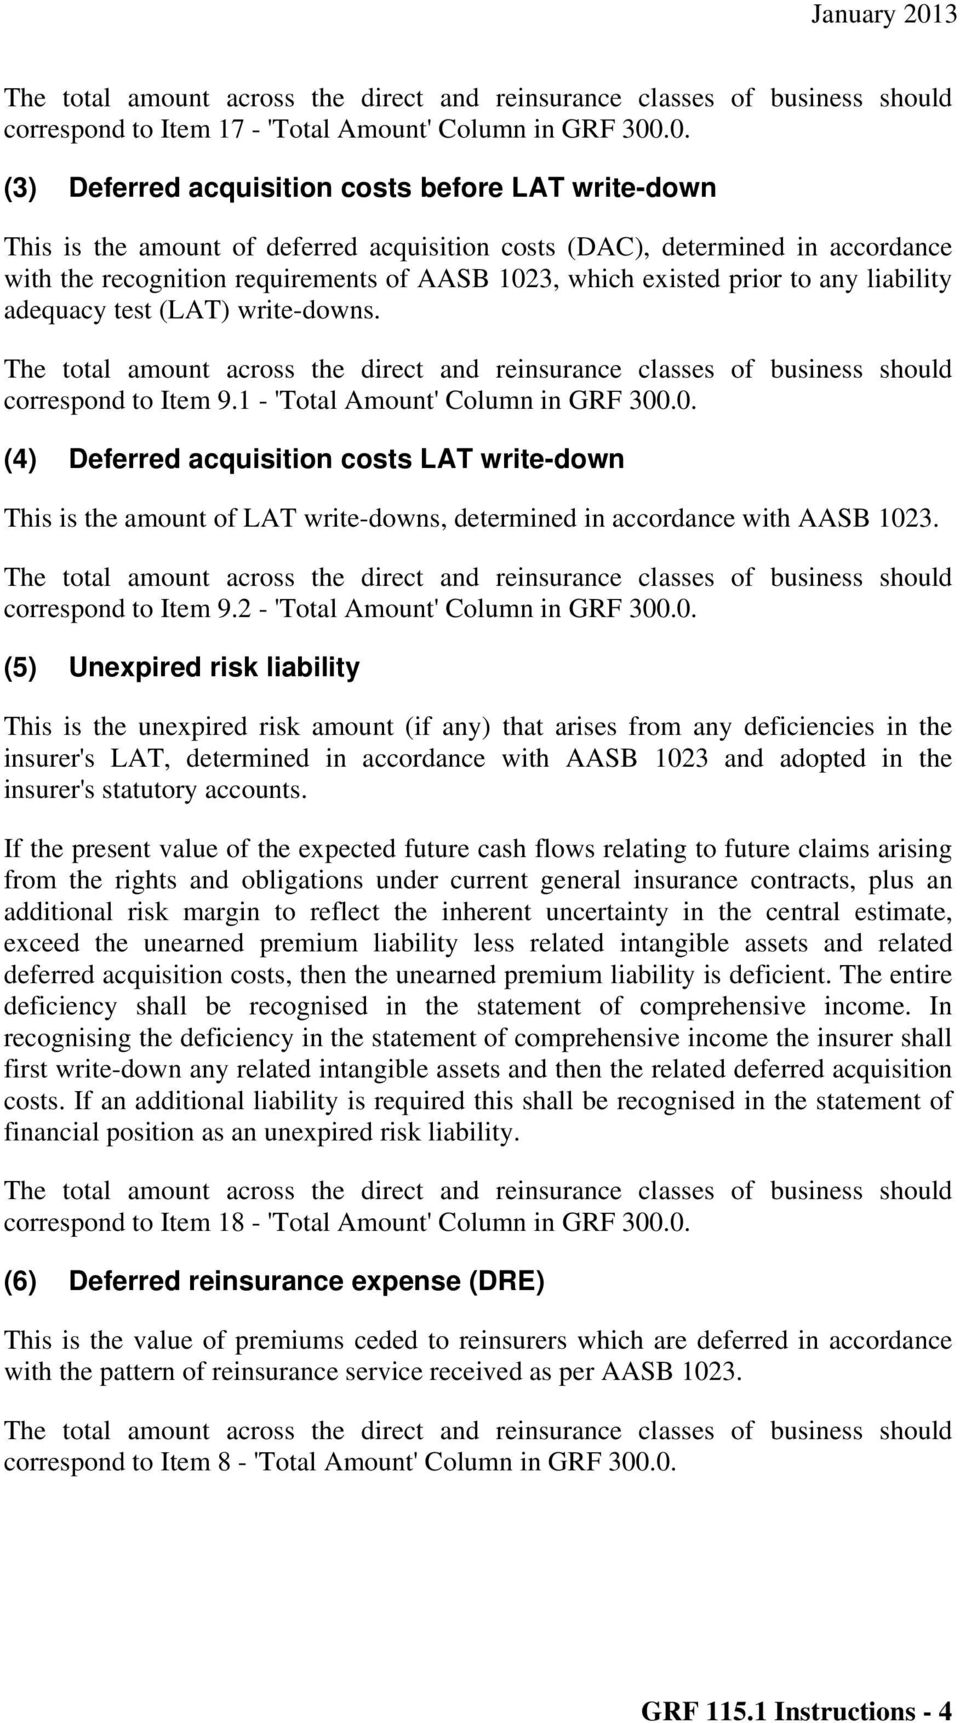 prior to any liability adequacy test (LAT) write-downs. correspond to Item 9.1 - 'Total Amount' Column in GRF 300